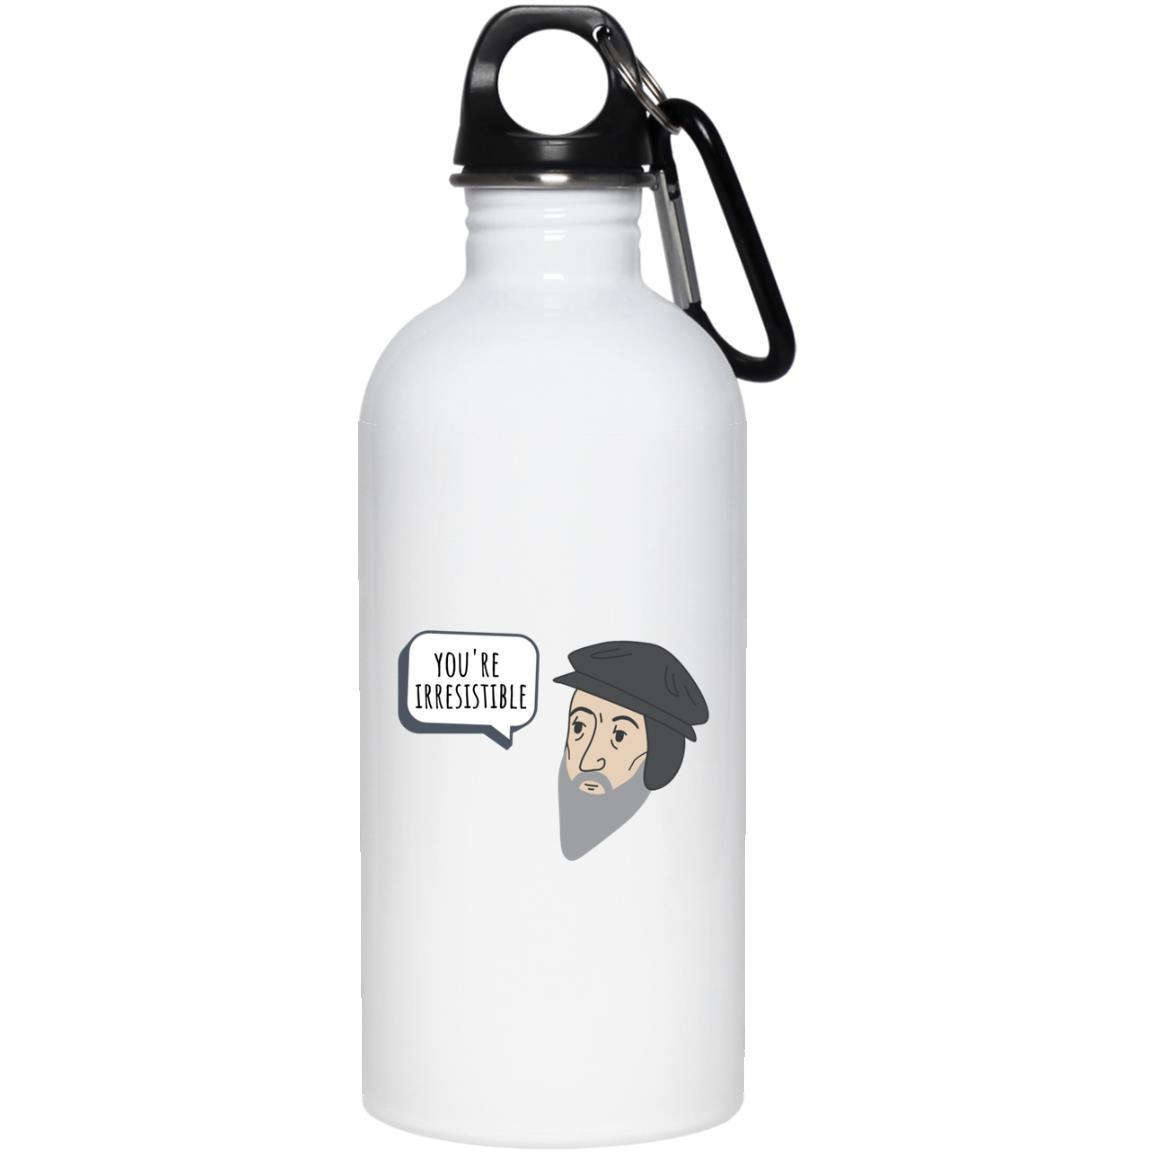 You're Irresistible (20oz Steel Water Bottle) - SDG Clothing